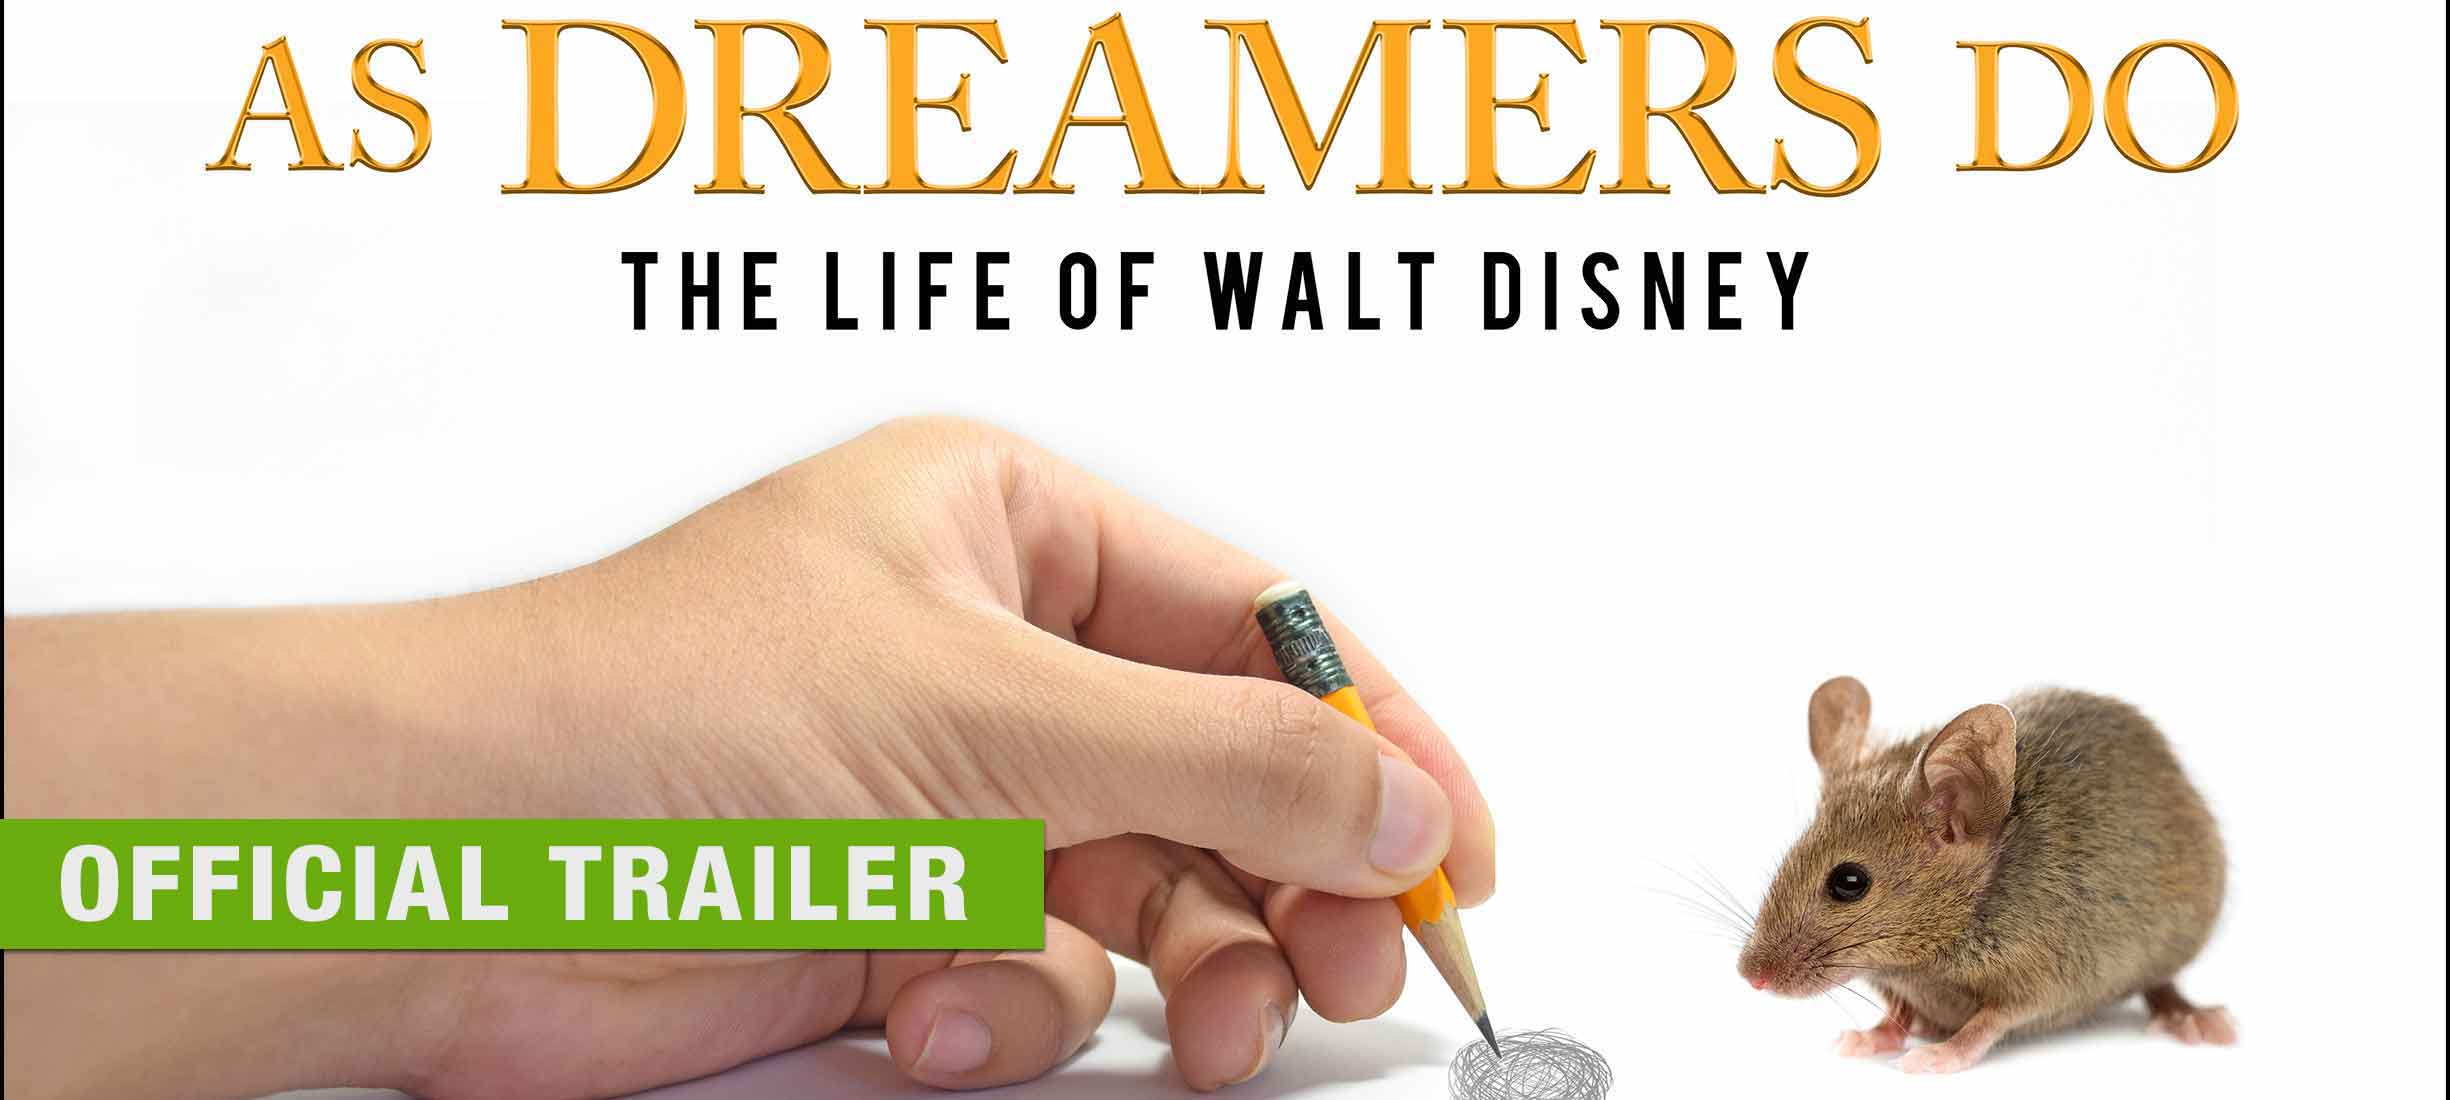 As Dreamers Do - Official Trailer